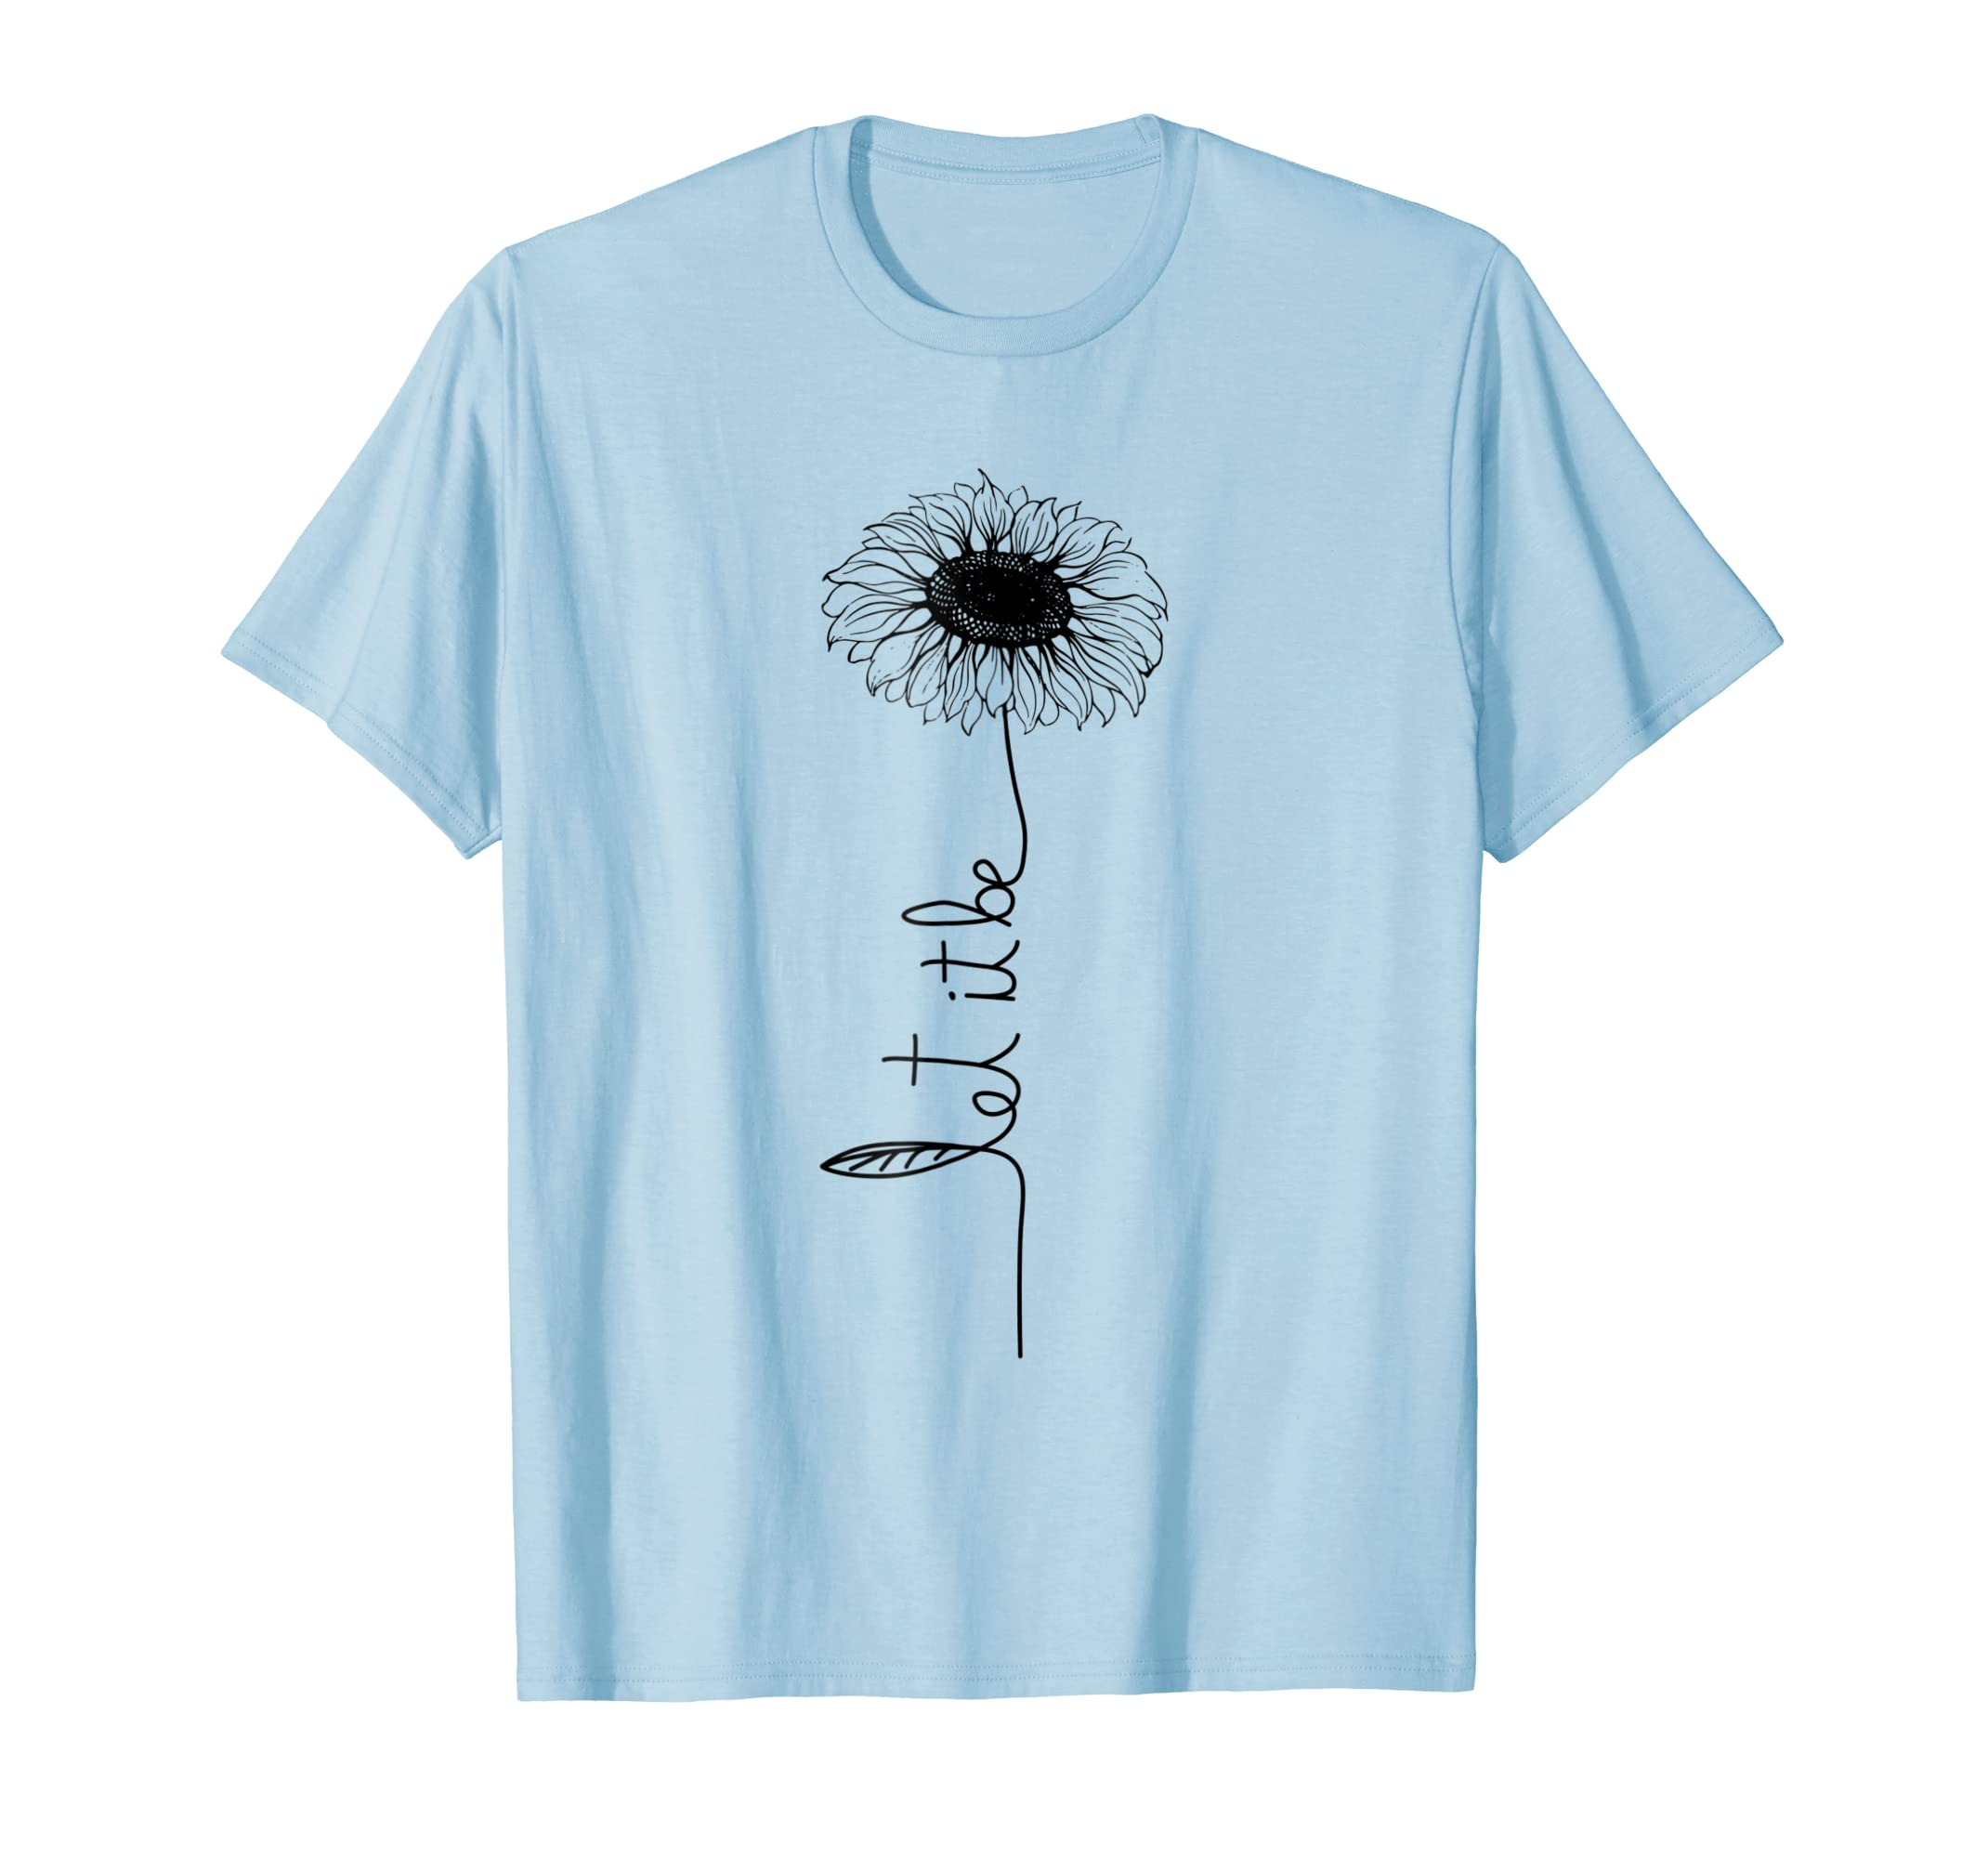 Let it be Sunflower Hippie Gypsy Soul Lover Vintage Shirt-mt